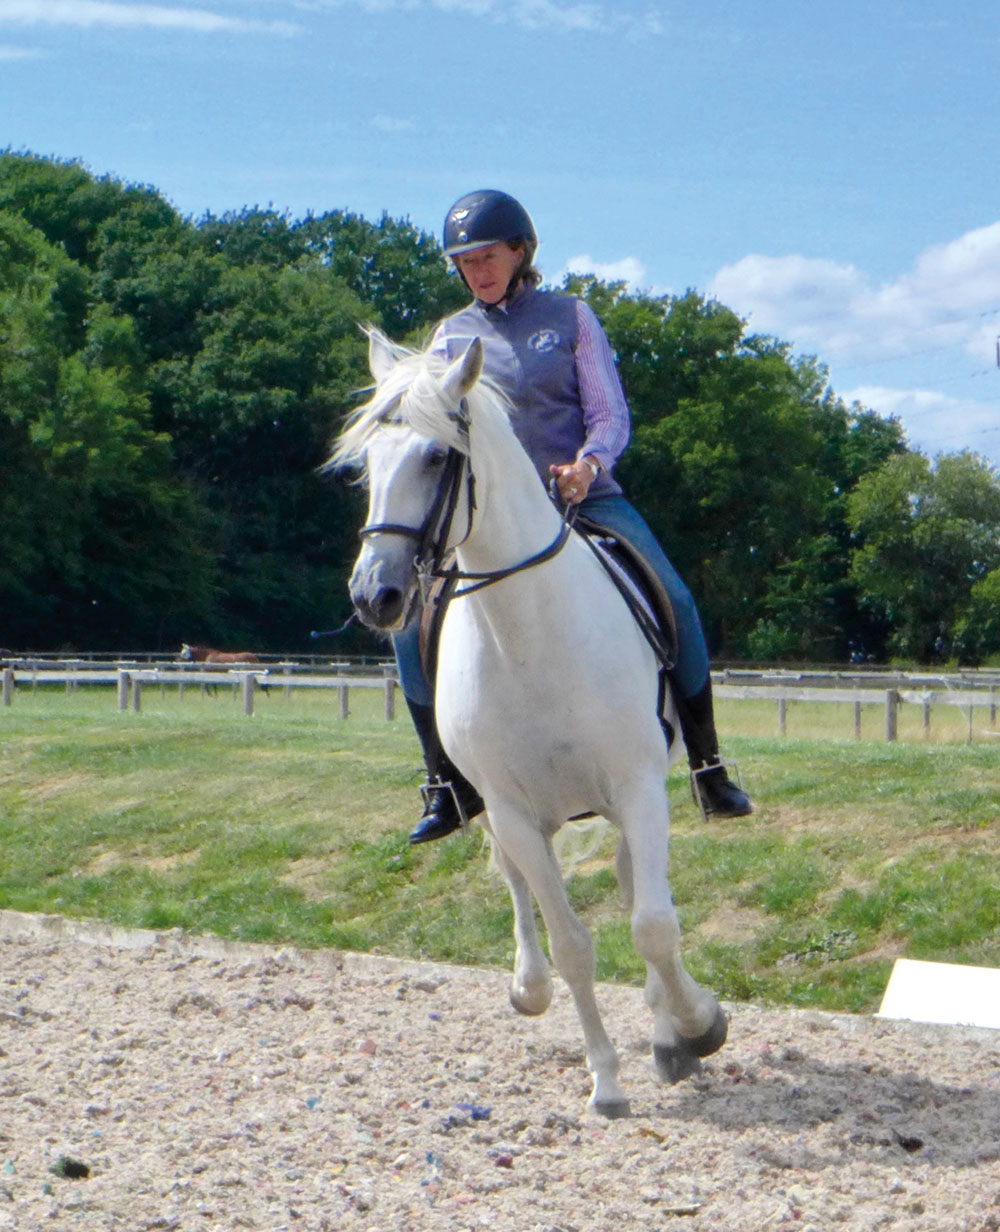 Horse and rider canter transition